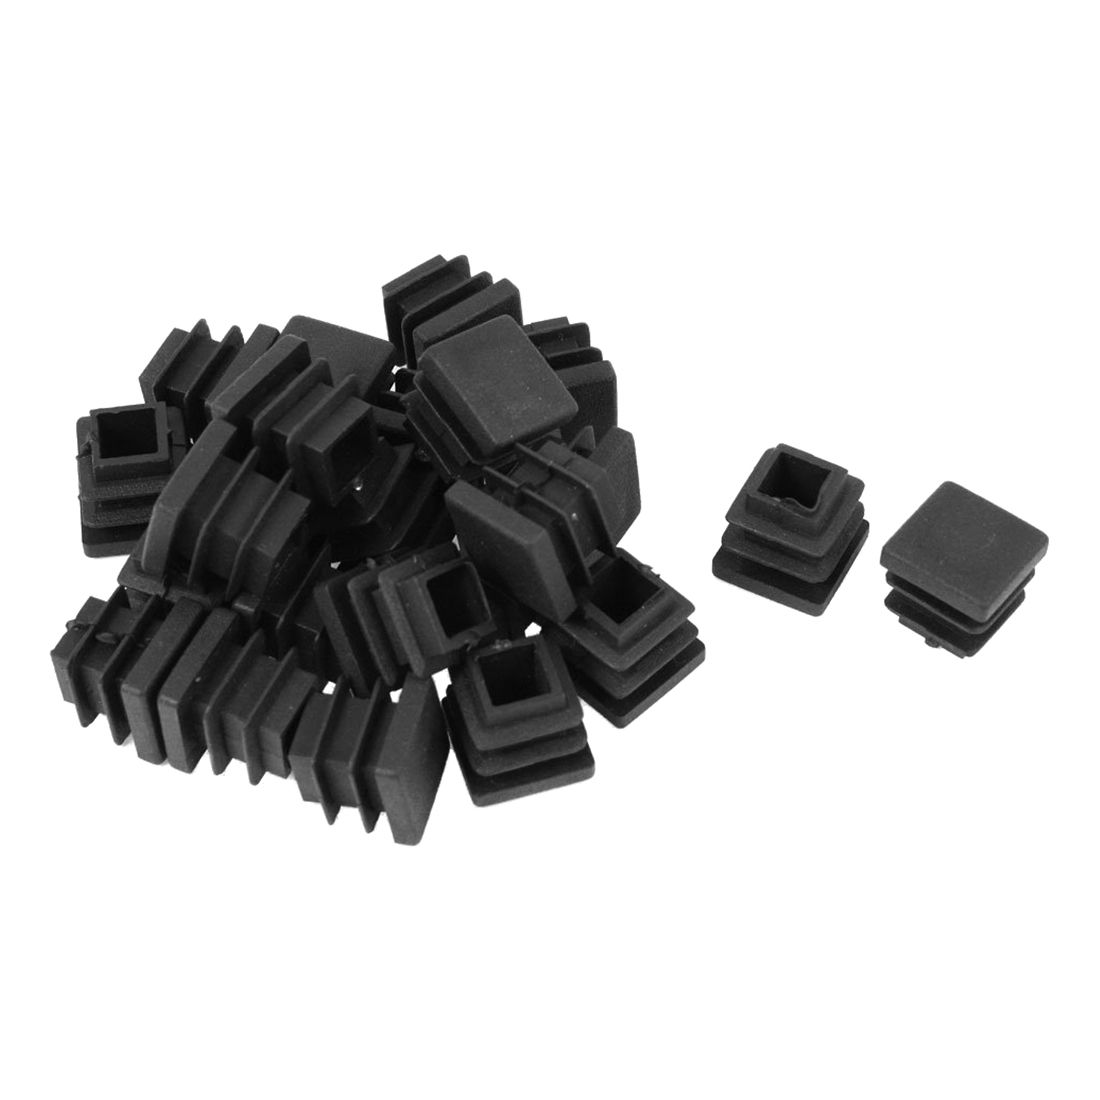 24 Pieces 16 * 16mm Plastic Striated Tube Plugs Insertion Black24 Pieces 16 * 16mm Plastic Striated Tube Plugs Insertion Black